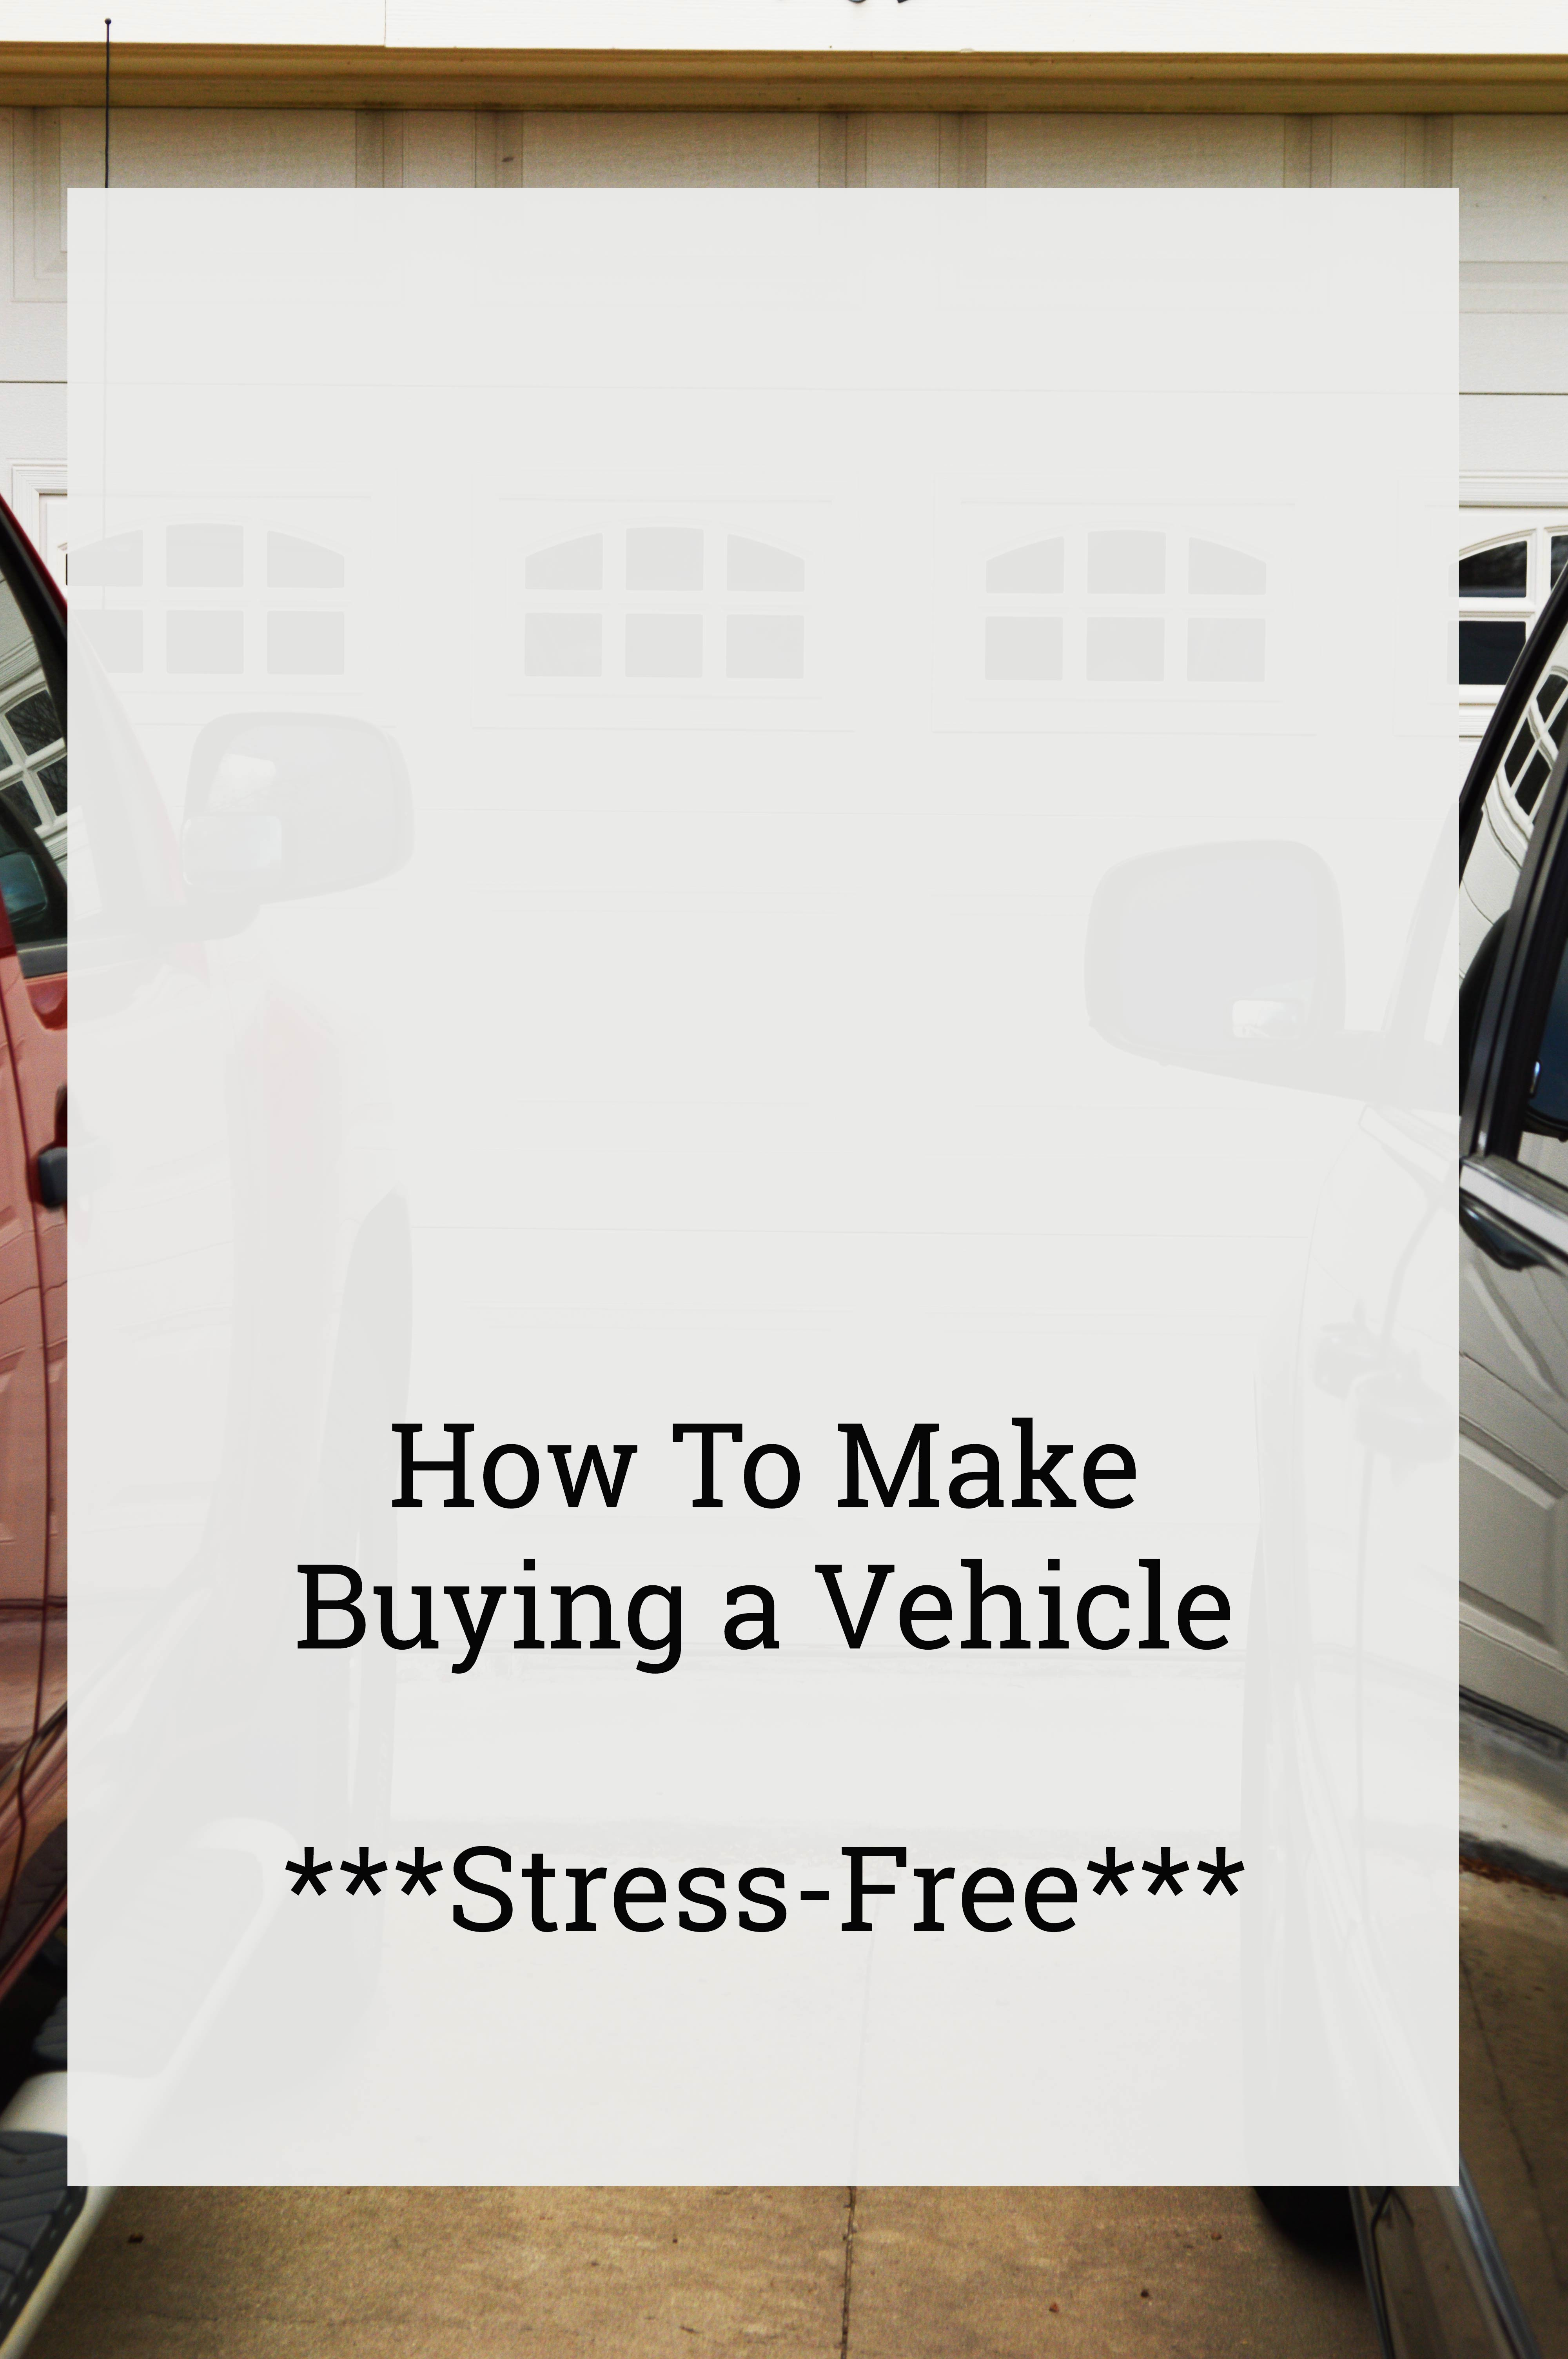 How to Make Buying a Vehicle Stress Free